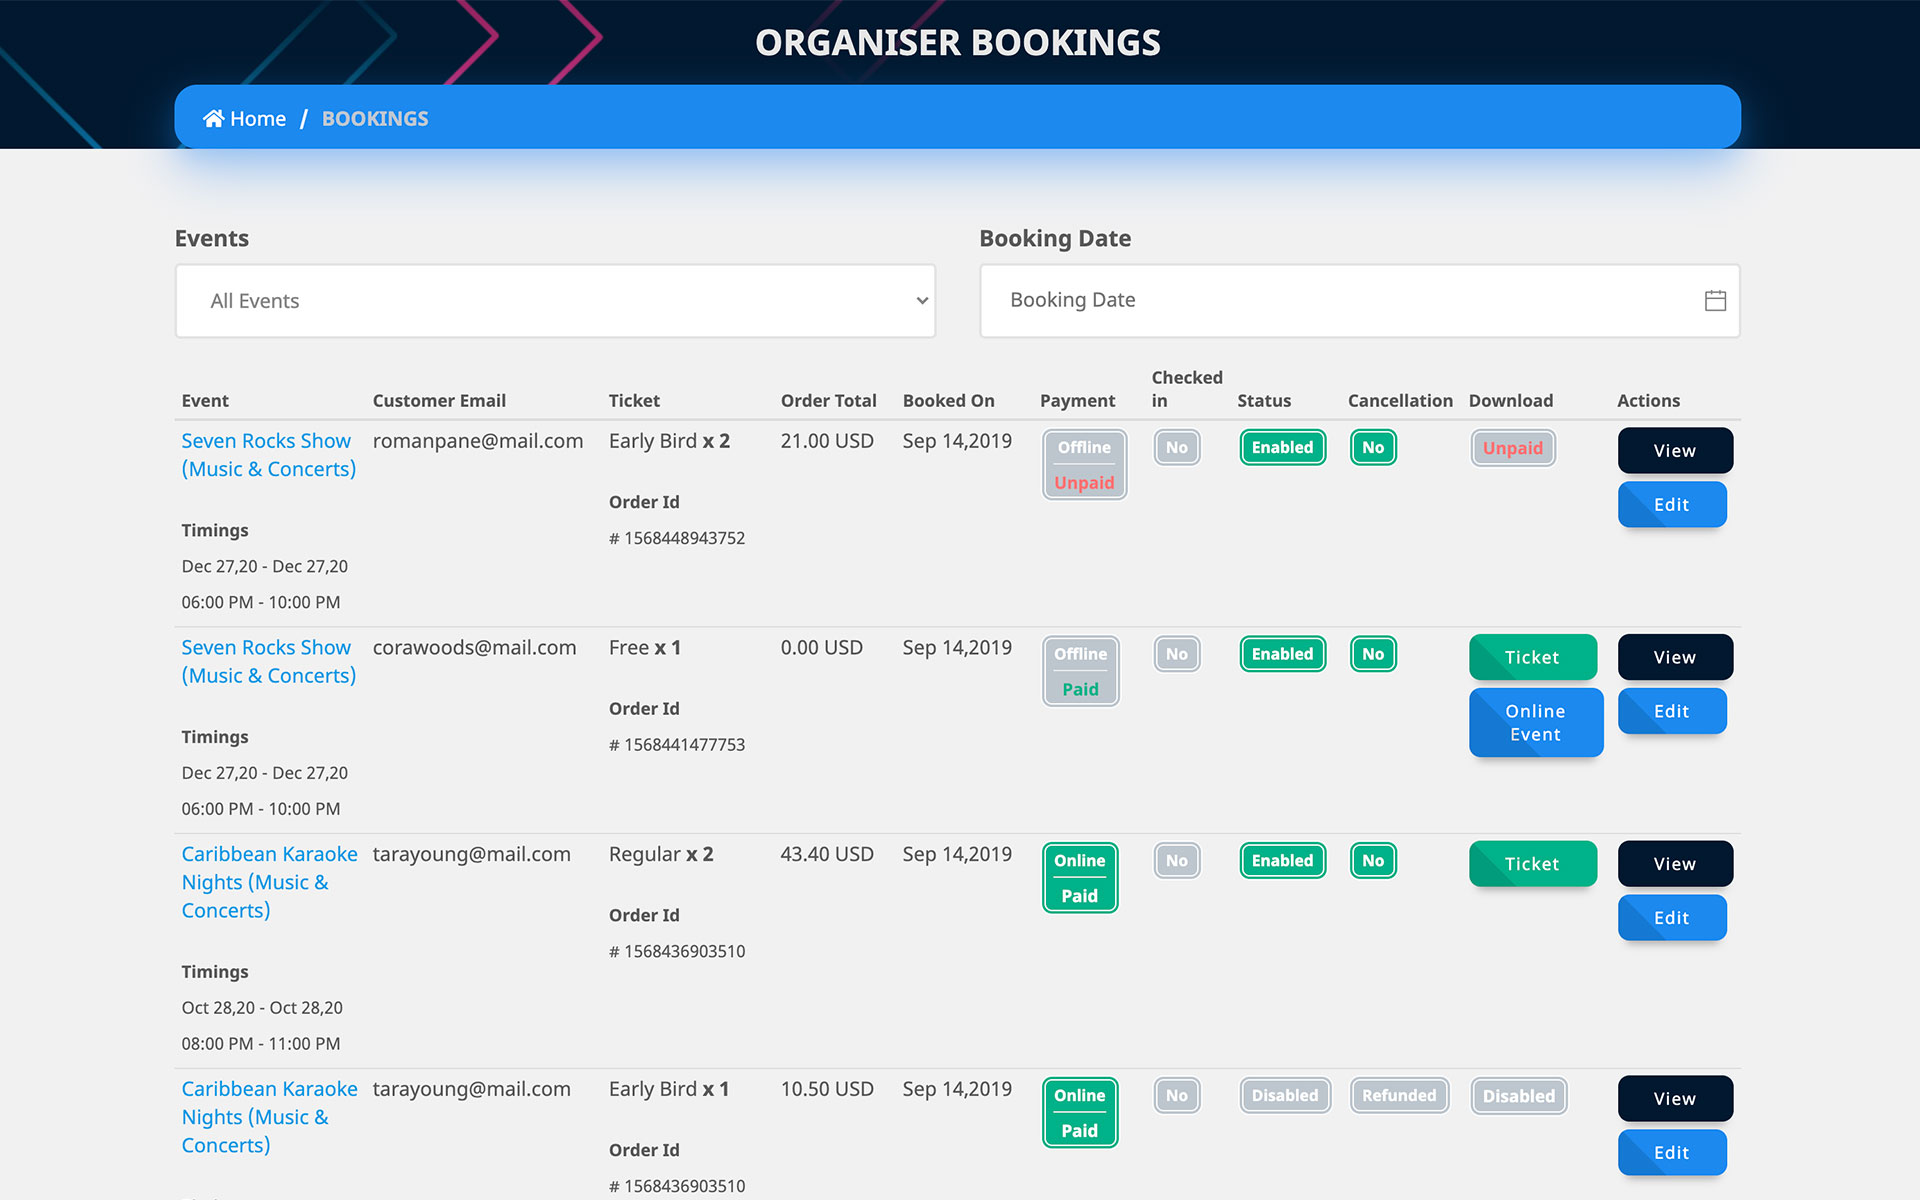 manage-bookings-organizer